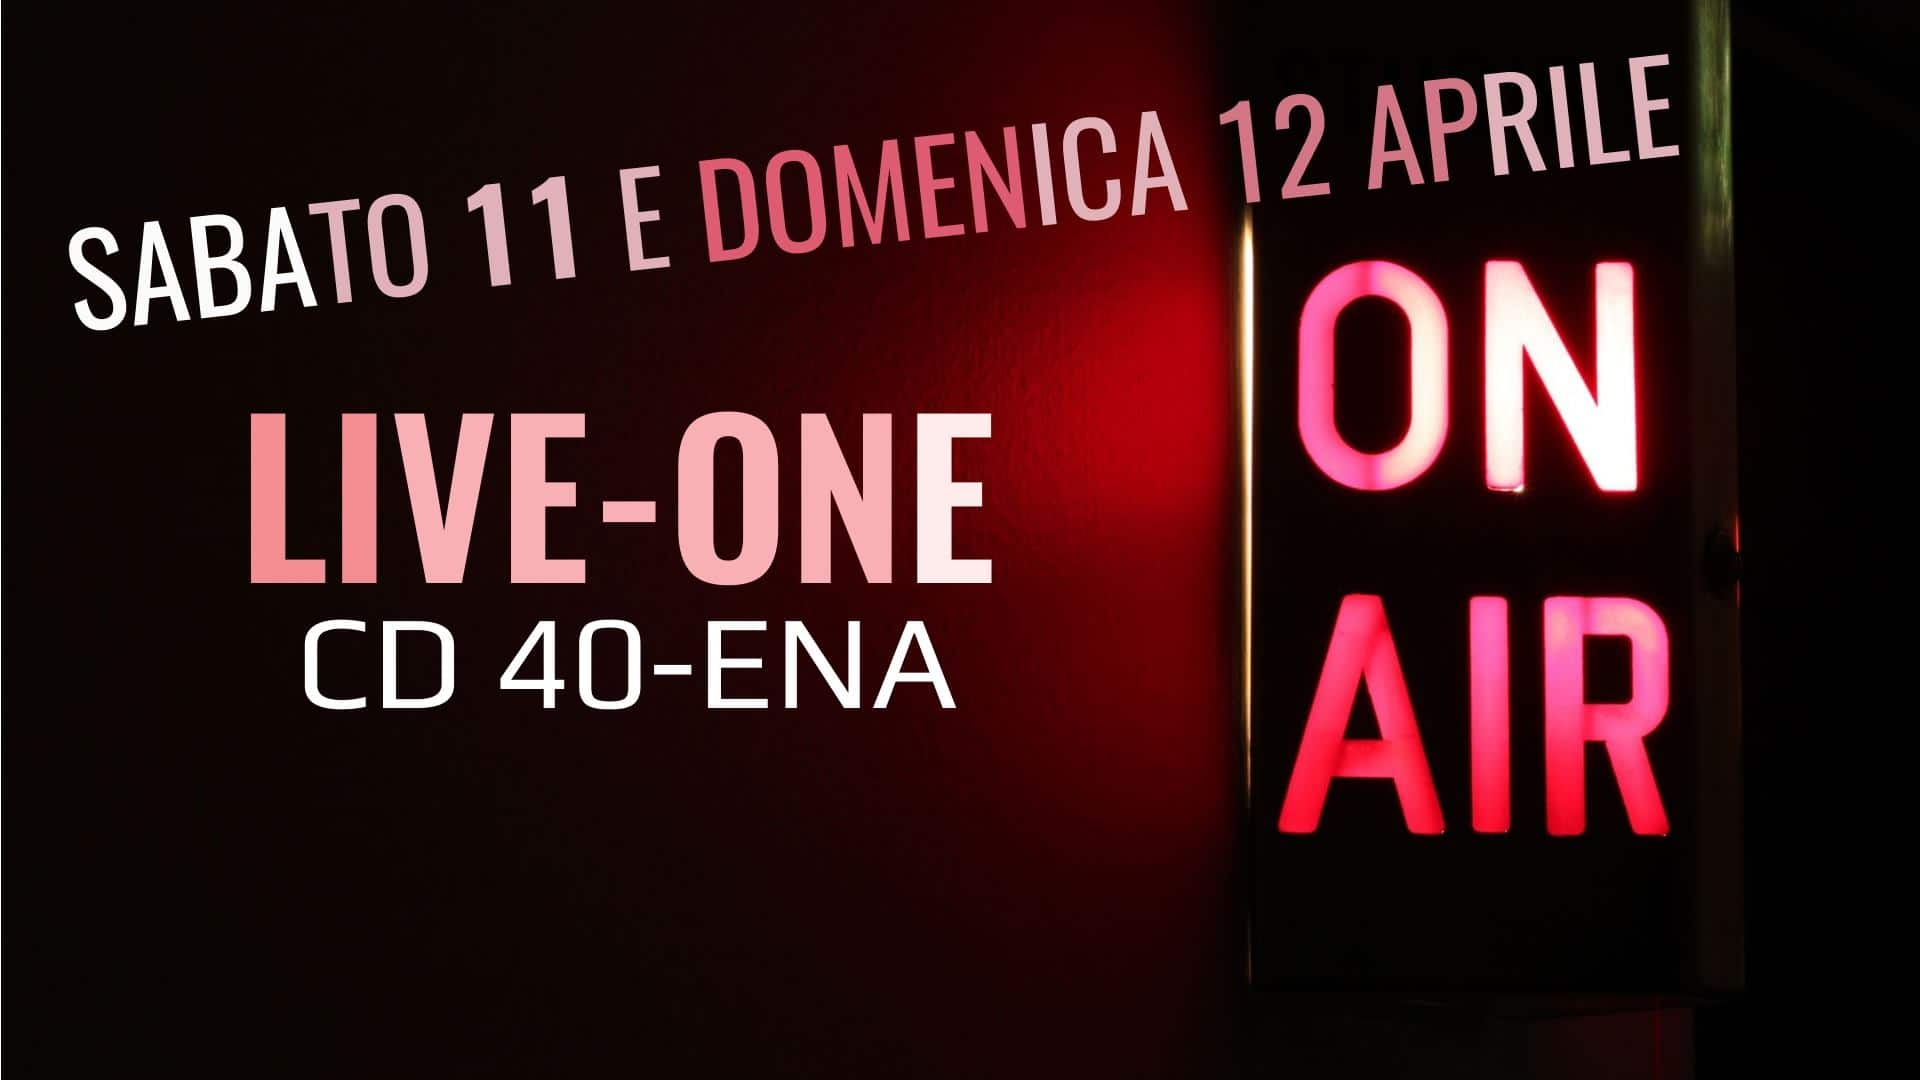 LIVE-ONE CD 40-ENA